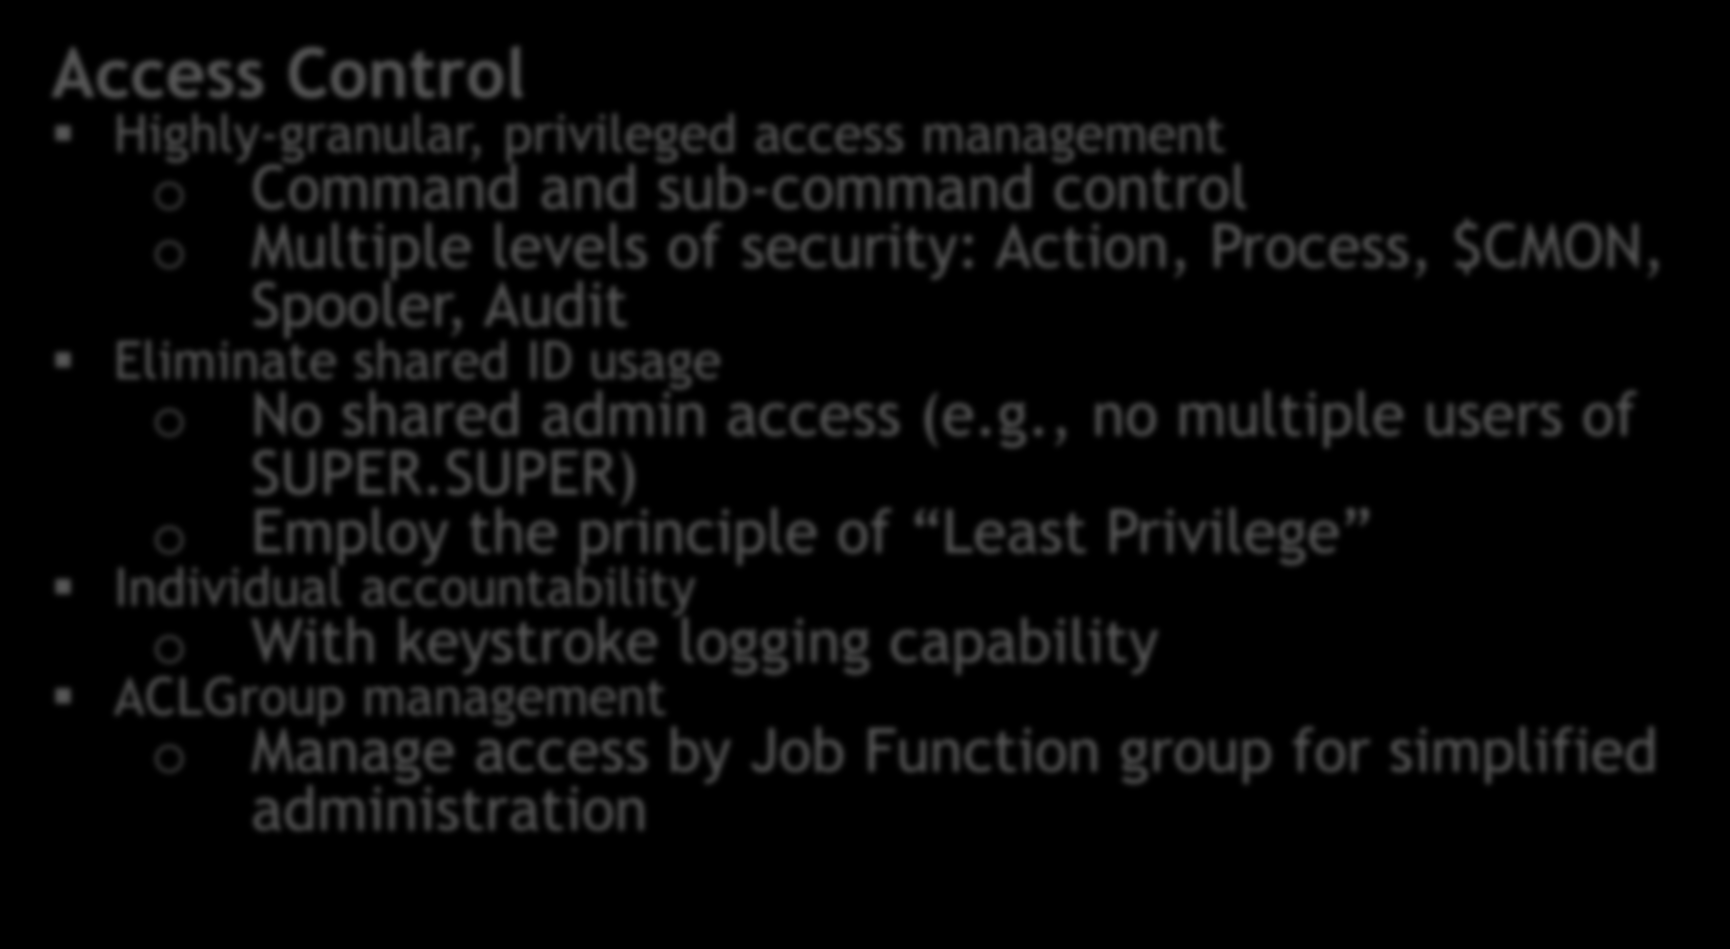 Access Control Access Control Highly-granular, privileged access management o o Individual Accountability Keystroke Logging Privileged Access Management Command and sub-command control Multiple